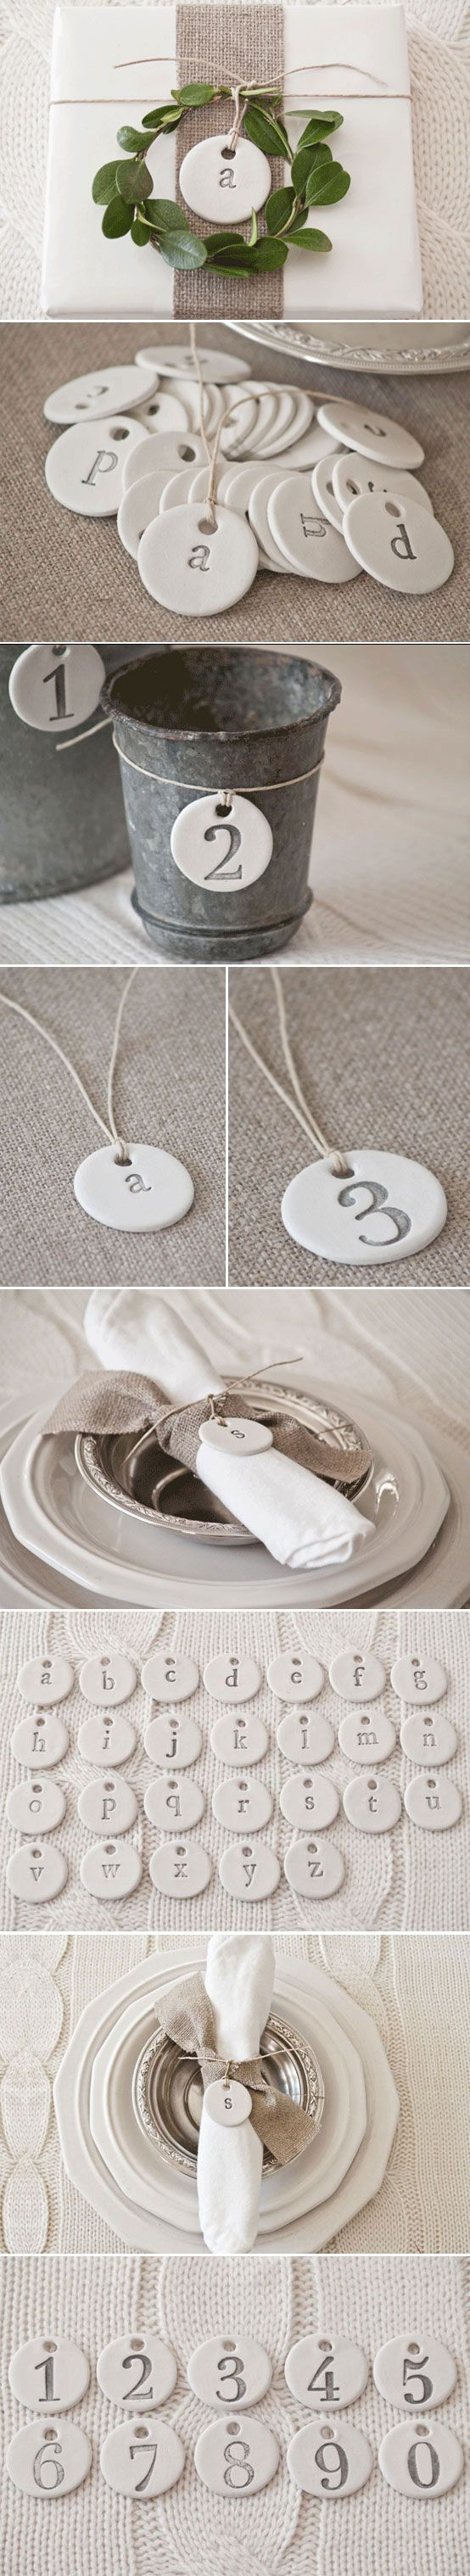 """HACKABLE :: Clay Letter & Number Typography Tags :: These can be easily made w/ clay. Use a 1.5"""" biscuit cutter (Ateco makes cheap sets that include this size--I know bc I have one) & roll out then cut the clay. Stamp w/ rubberstamps w/ letters &/or numbers. Paint the indentations w/ silver paint. Cut a hole thru the top w/ a straw. Bake to harden. Tie w/ twine."""